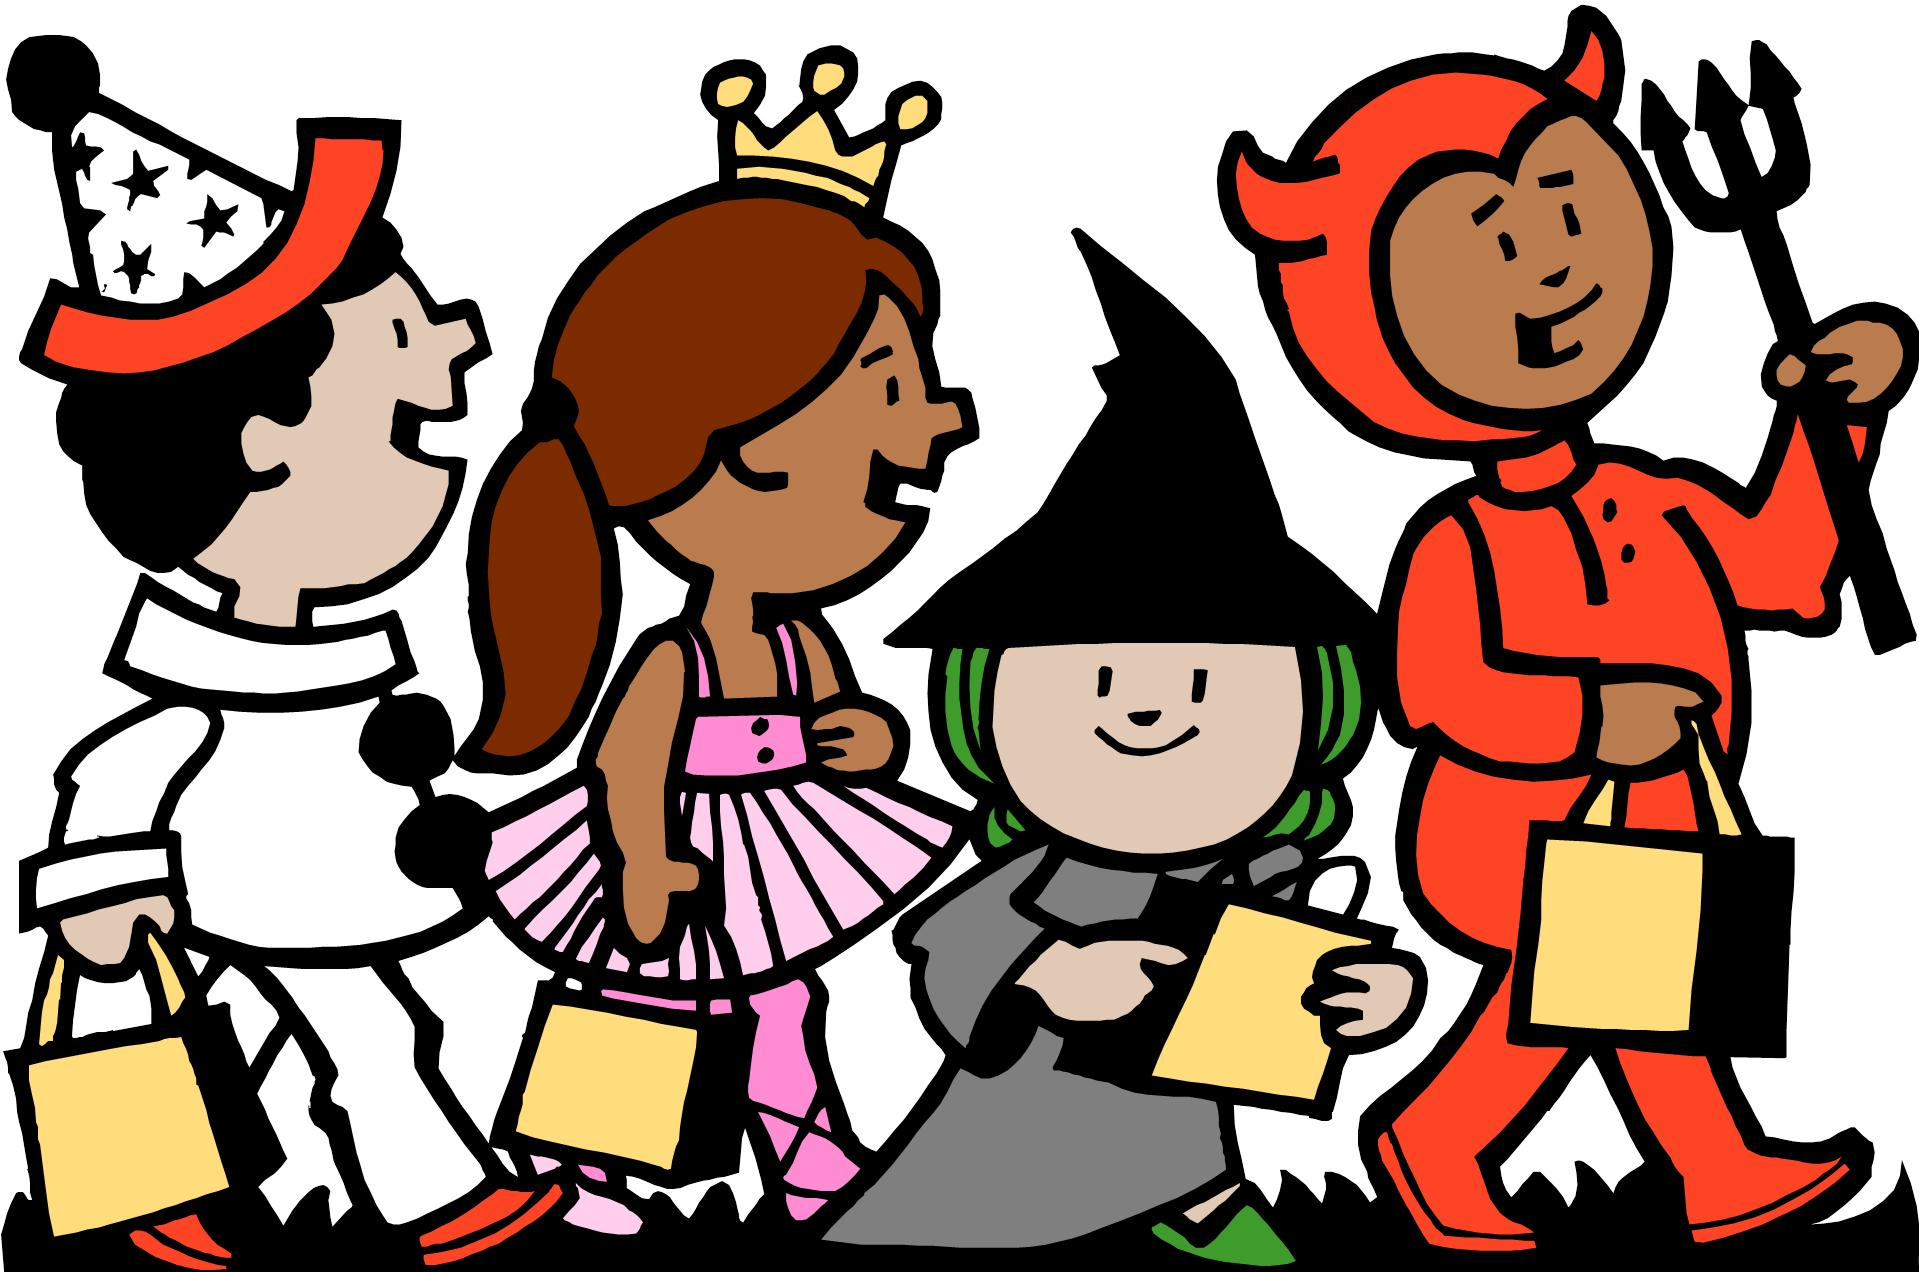 clipart freeuse download Best treat clipartion com. Kids trick or treating clipart